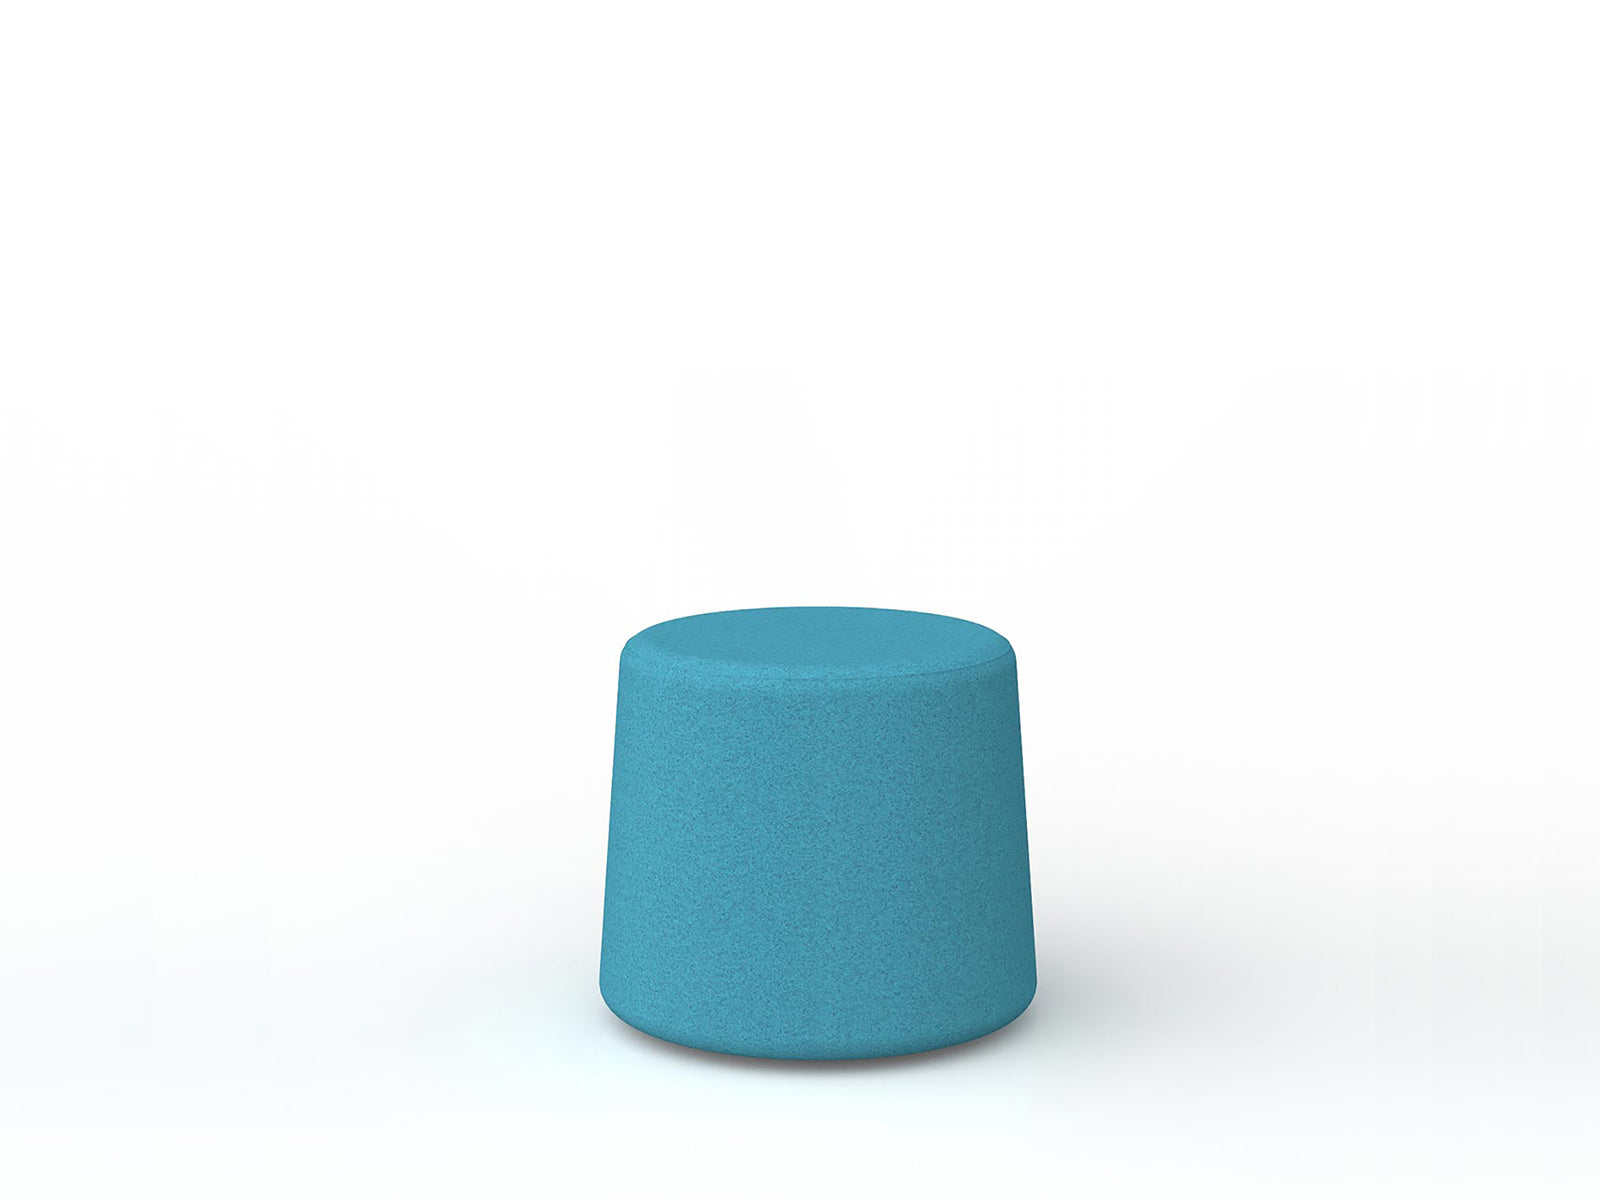 Motion Otto- Workspace Furniture Home and Office Soft Seating and Ottomans